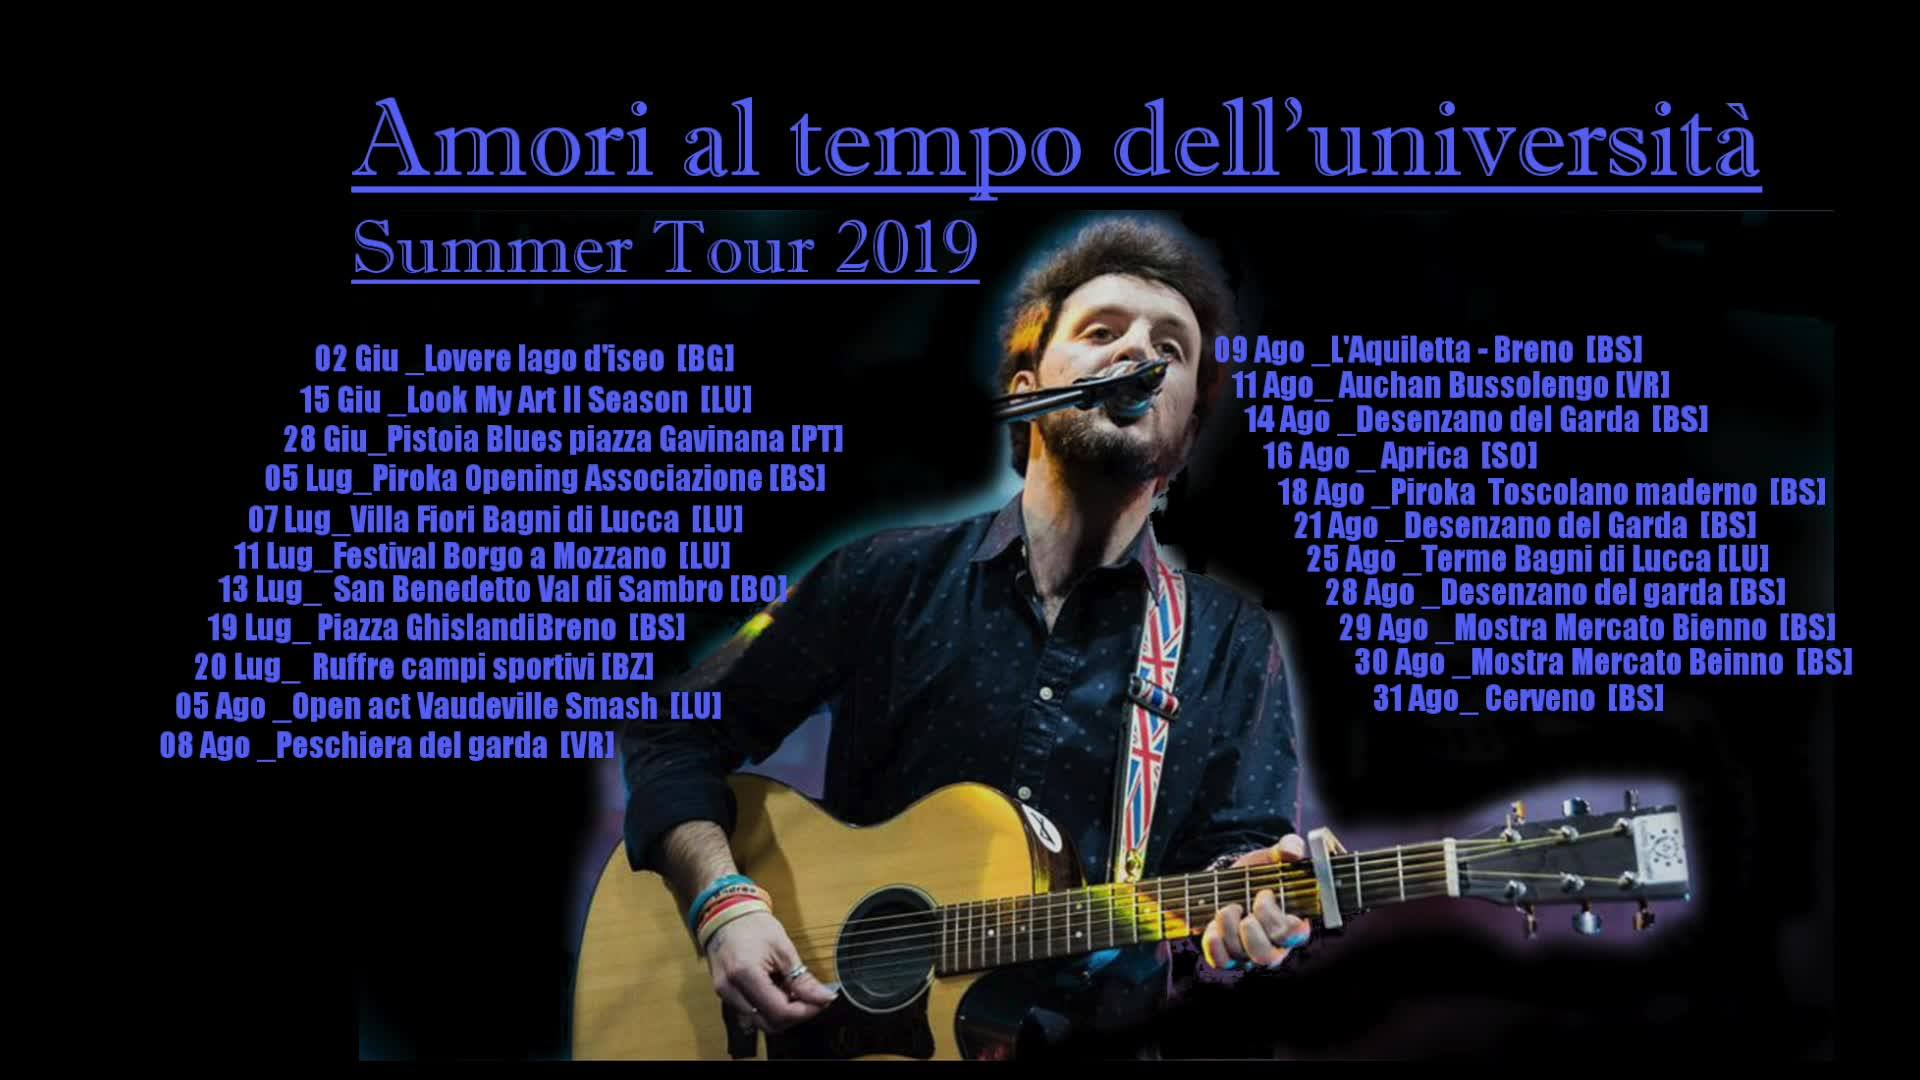 Summer Tour 2019 - Amori al tempo dell'università